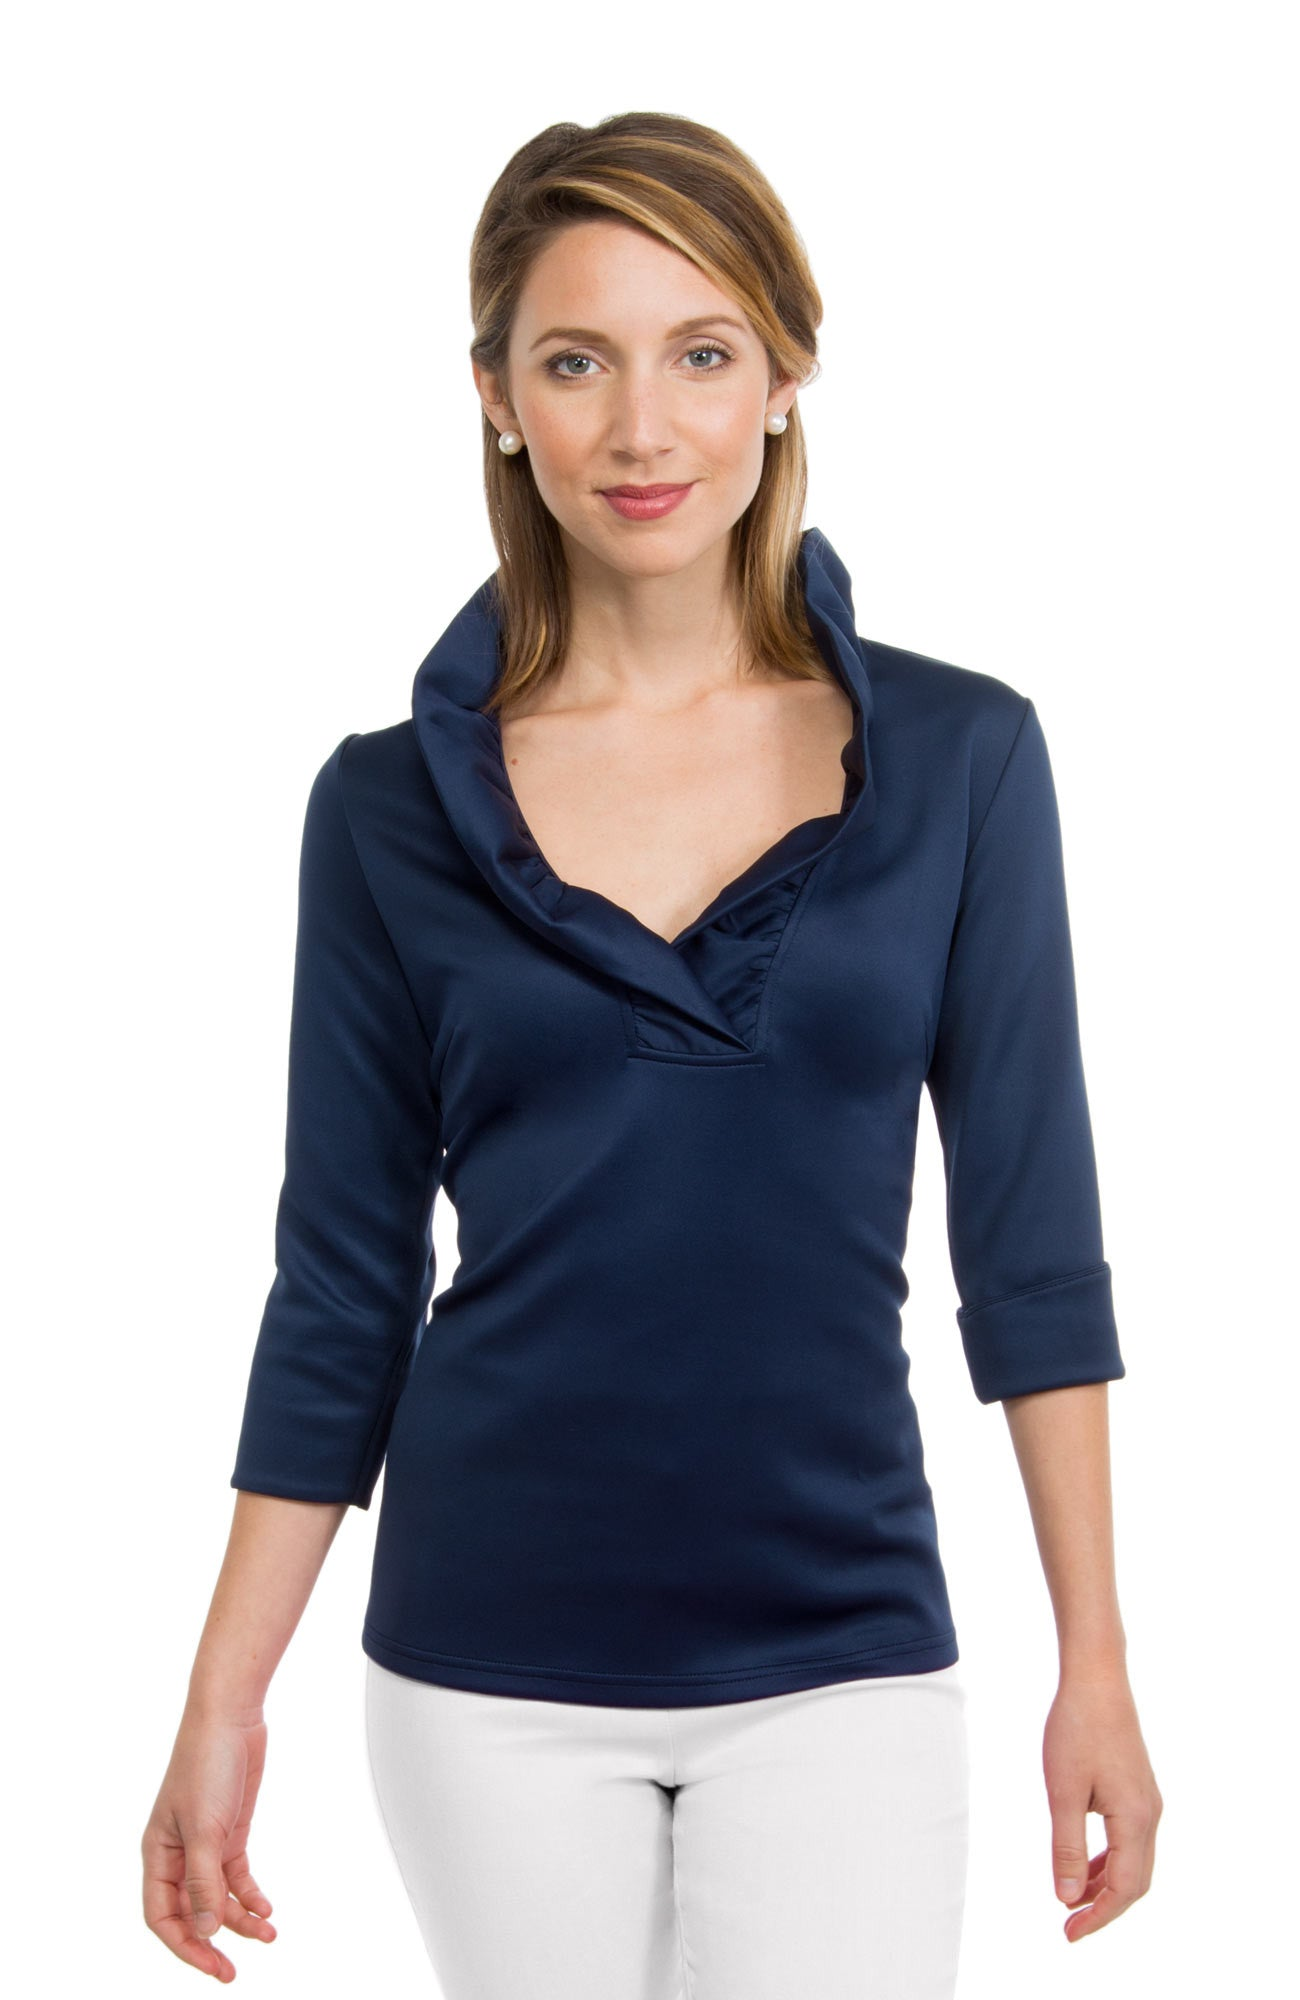 Gretchen Scott Ruff Neck Jersey Top - Solid Navy by Gretchen Scott from THE LUCKY KNOT - 1